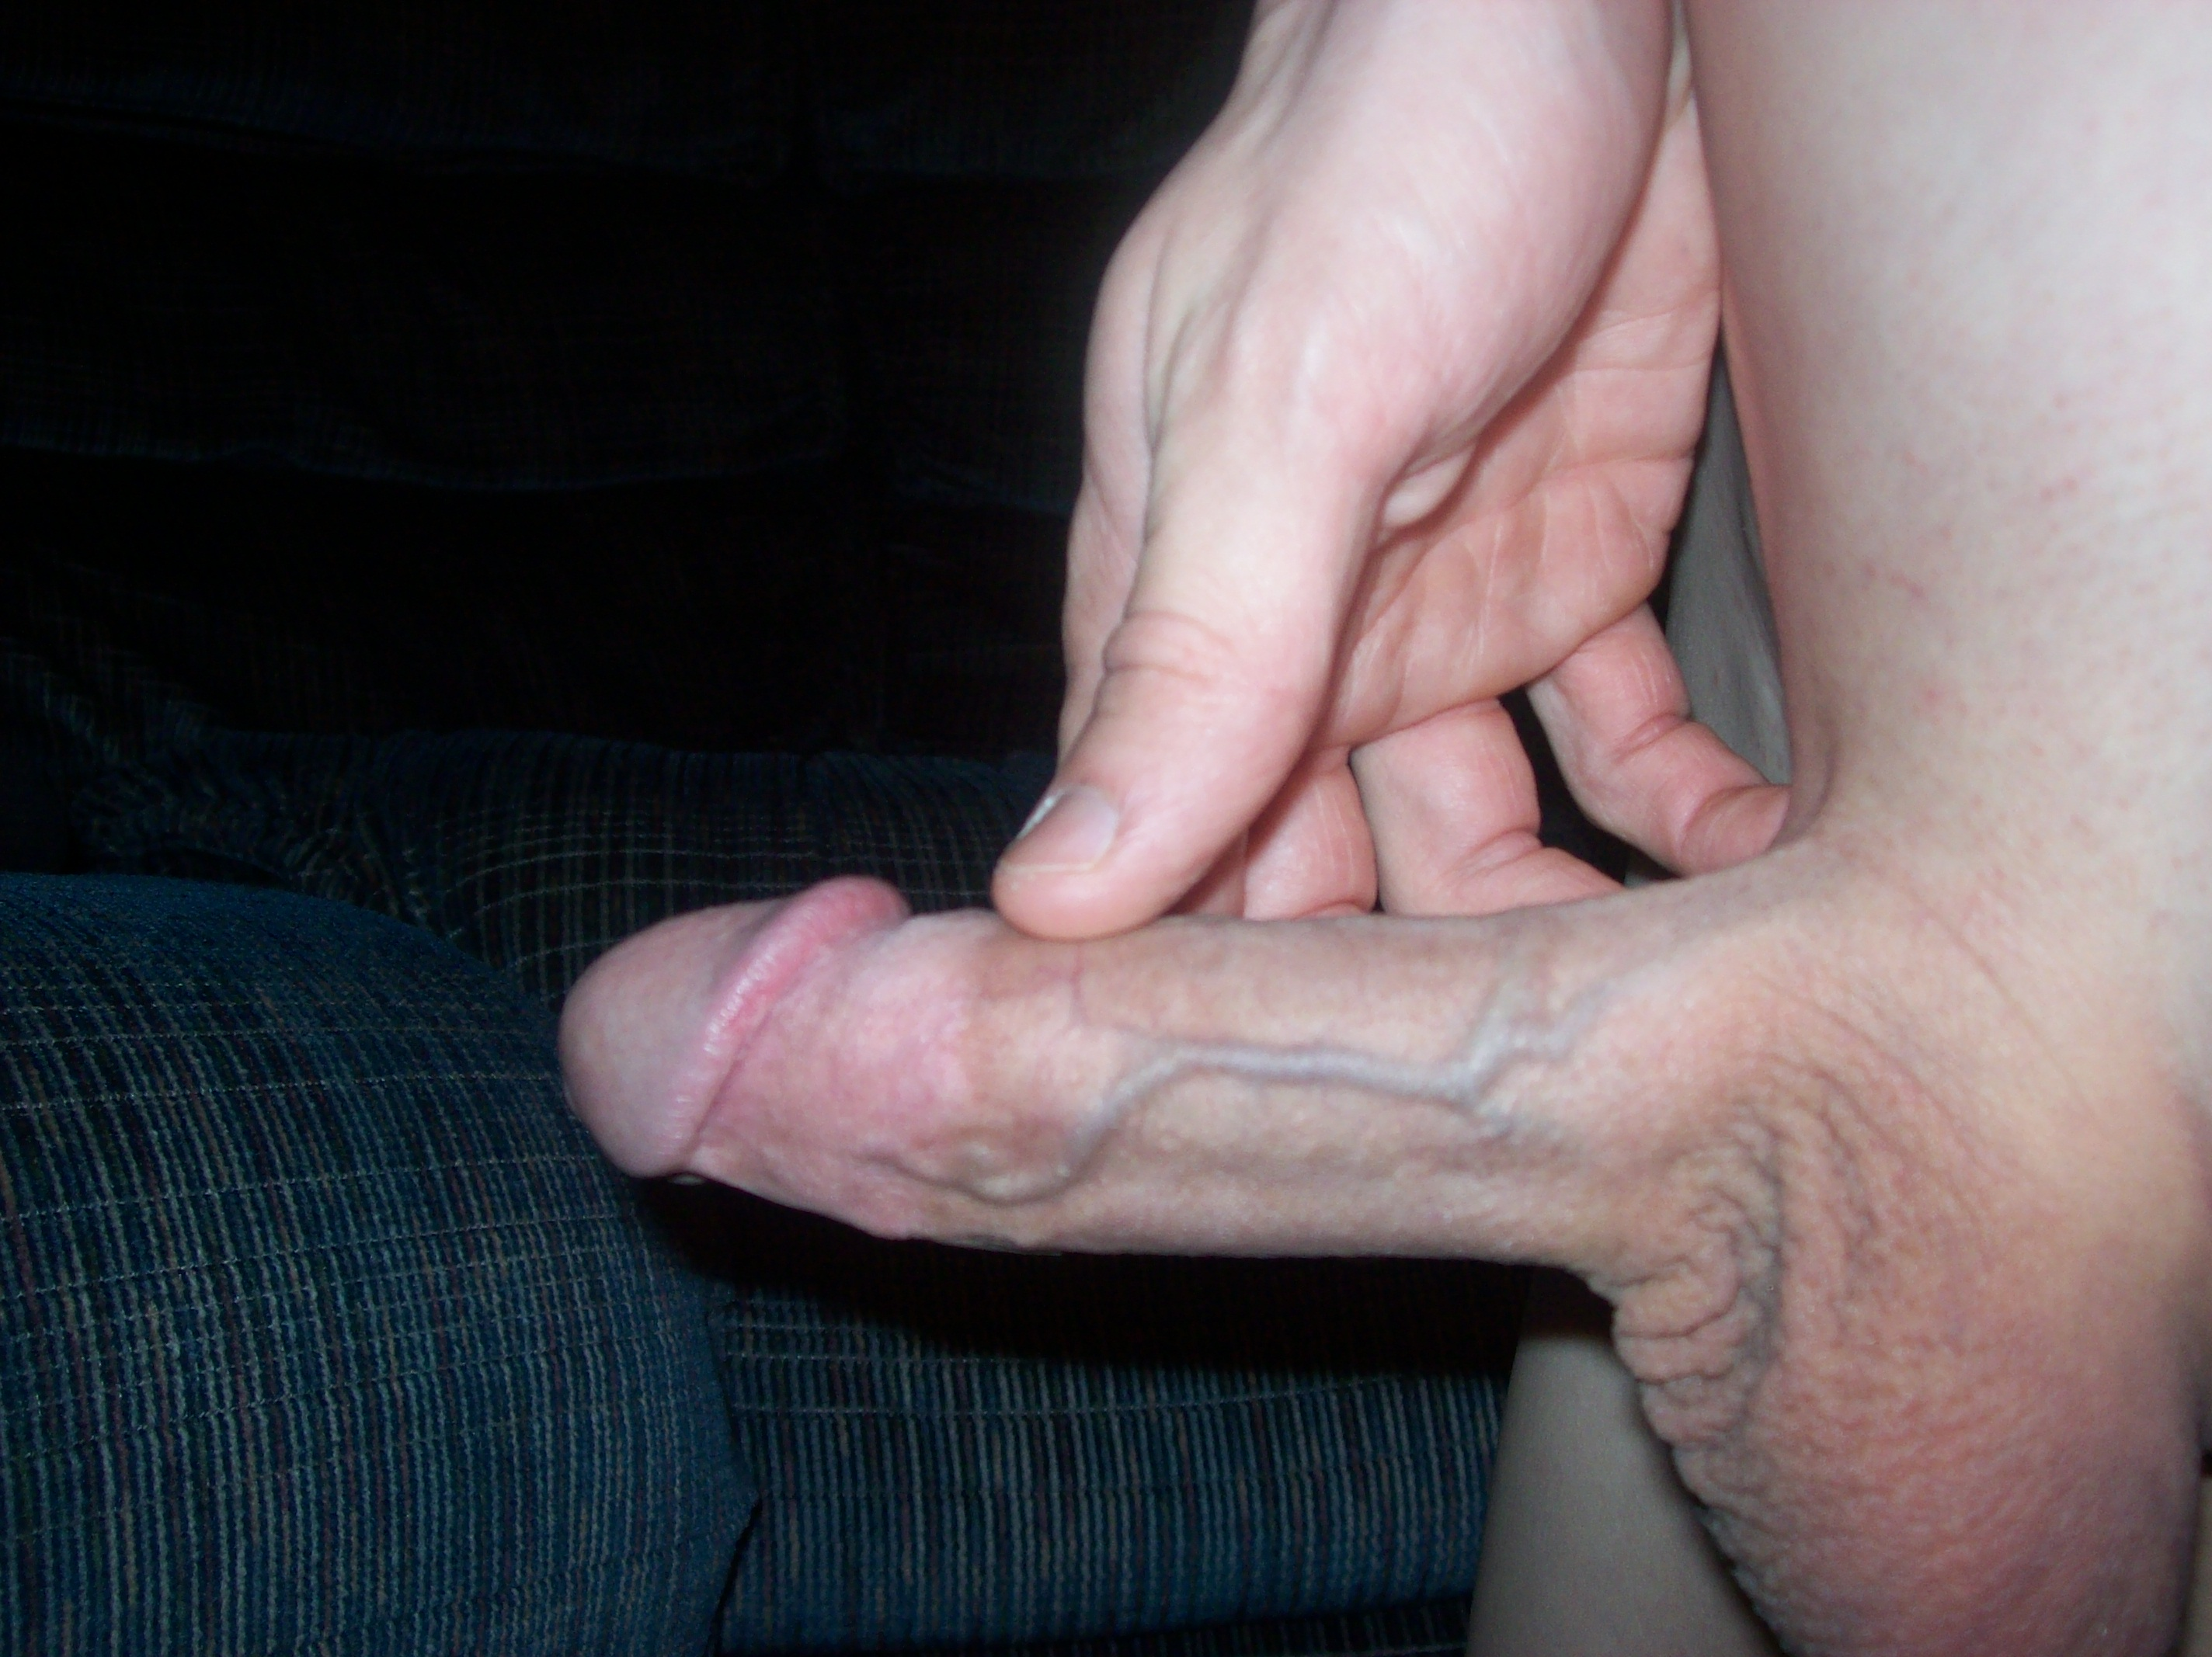 Good front side porn pictures of black dicks consider